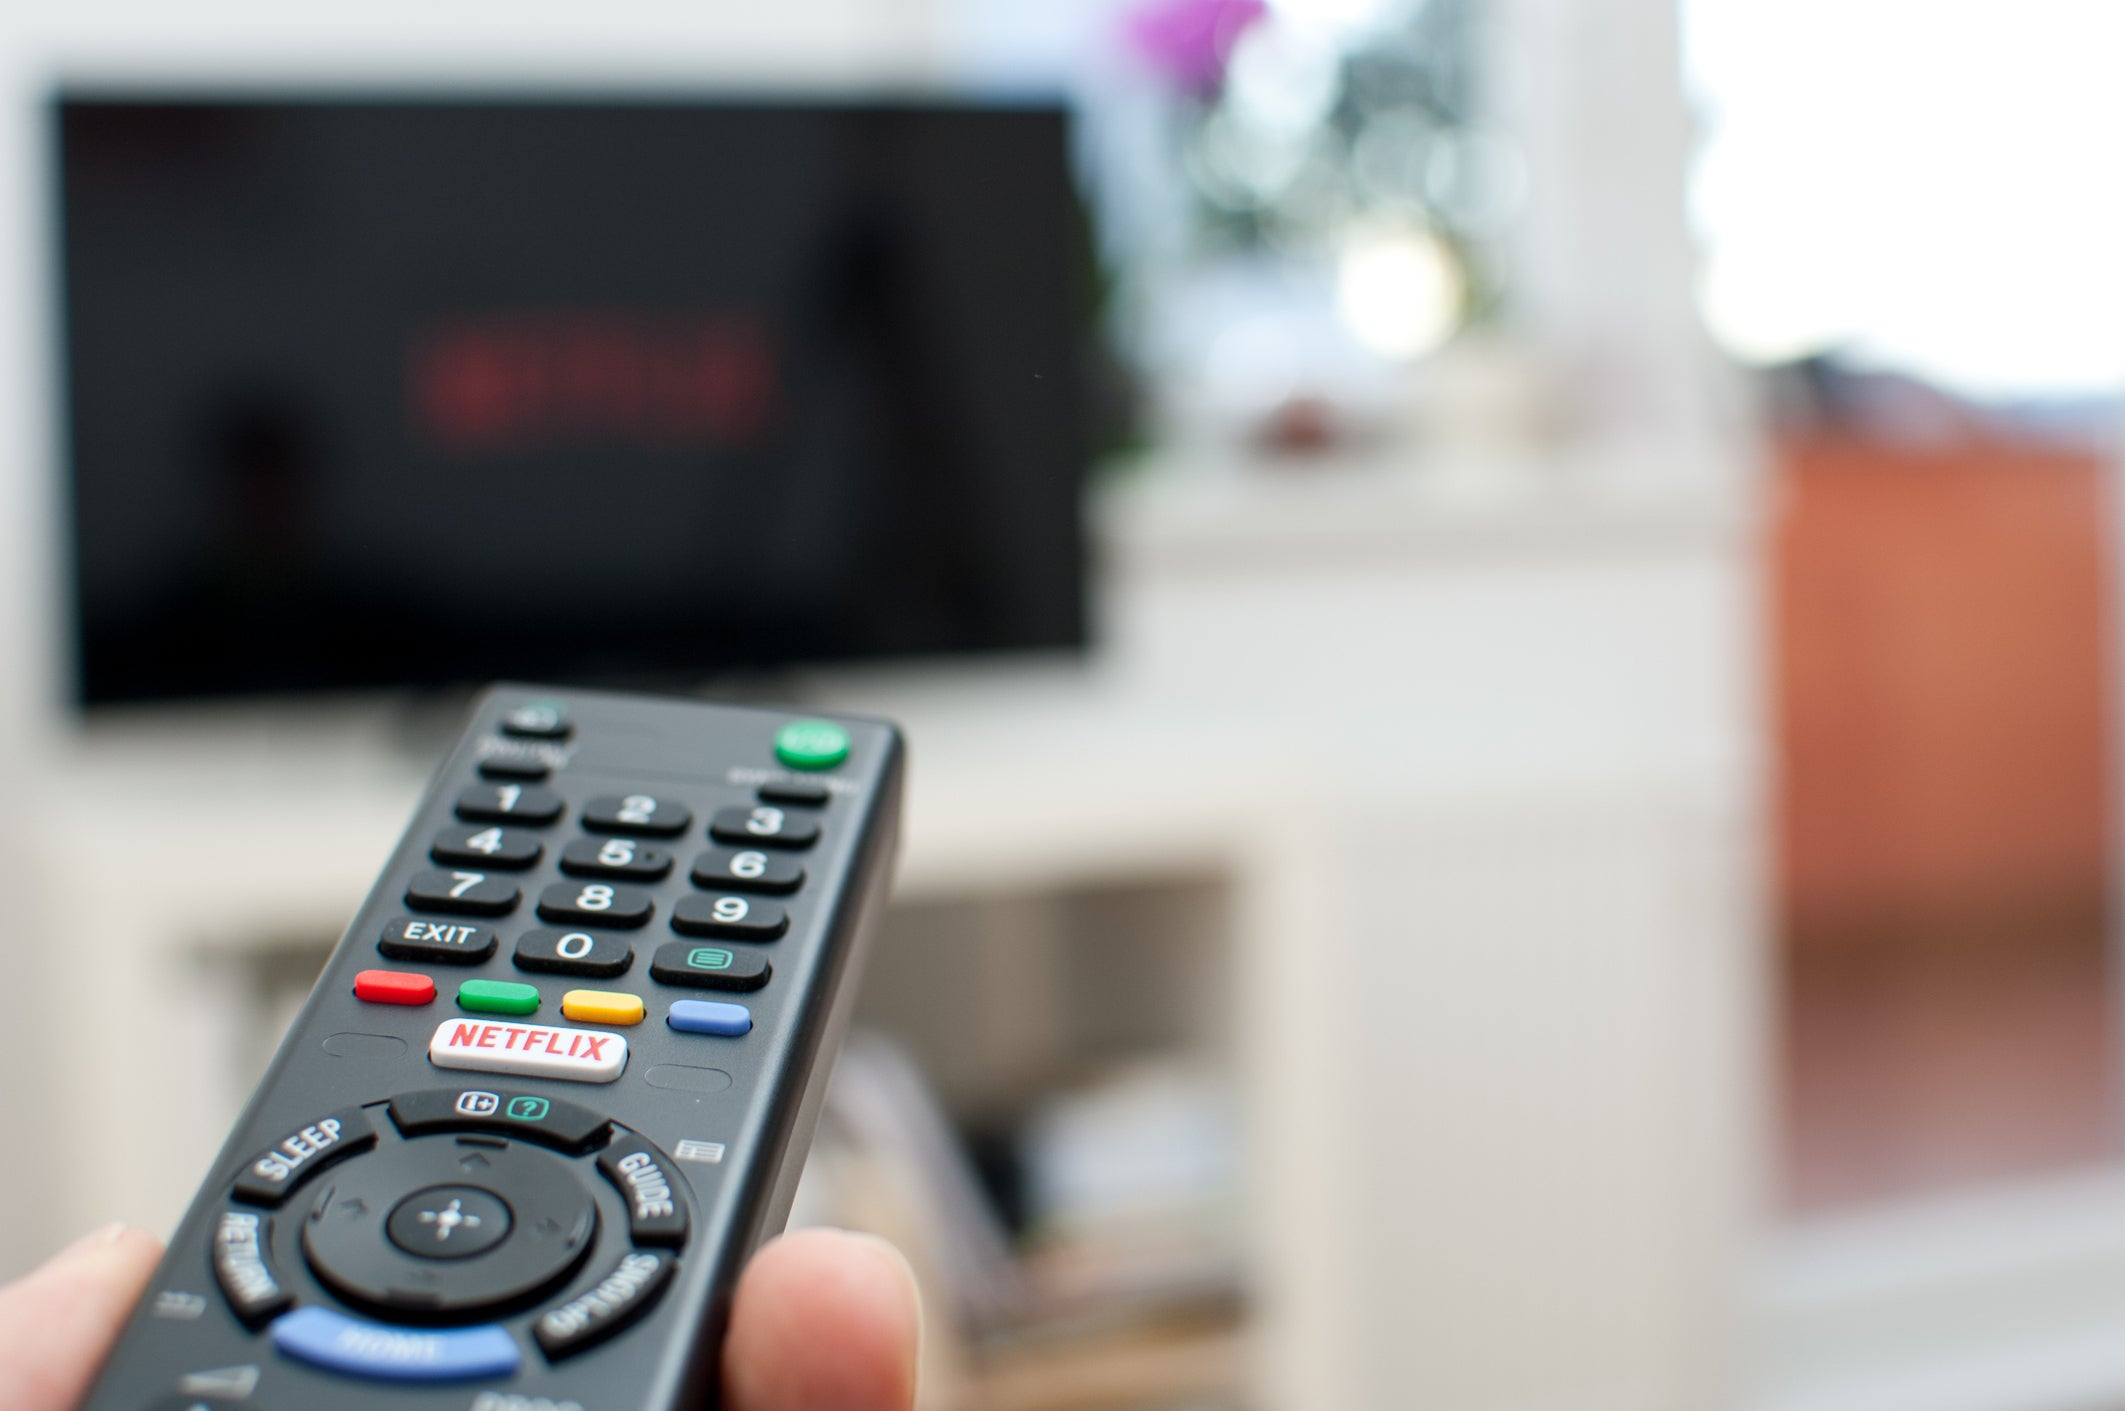 Remote control pointing toward television screen